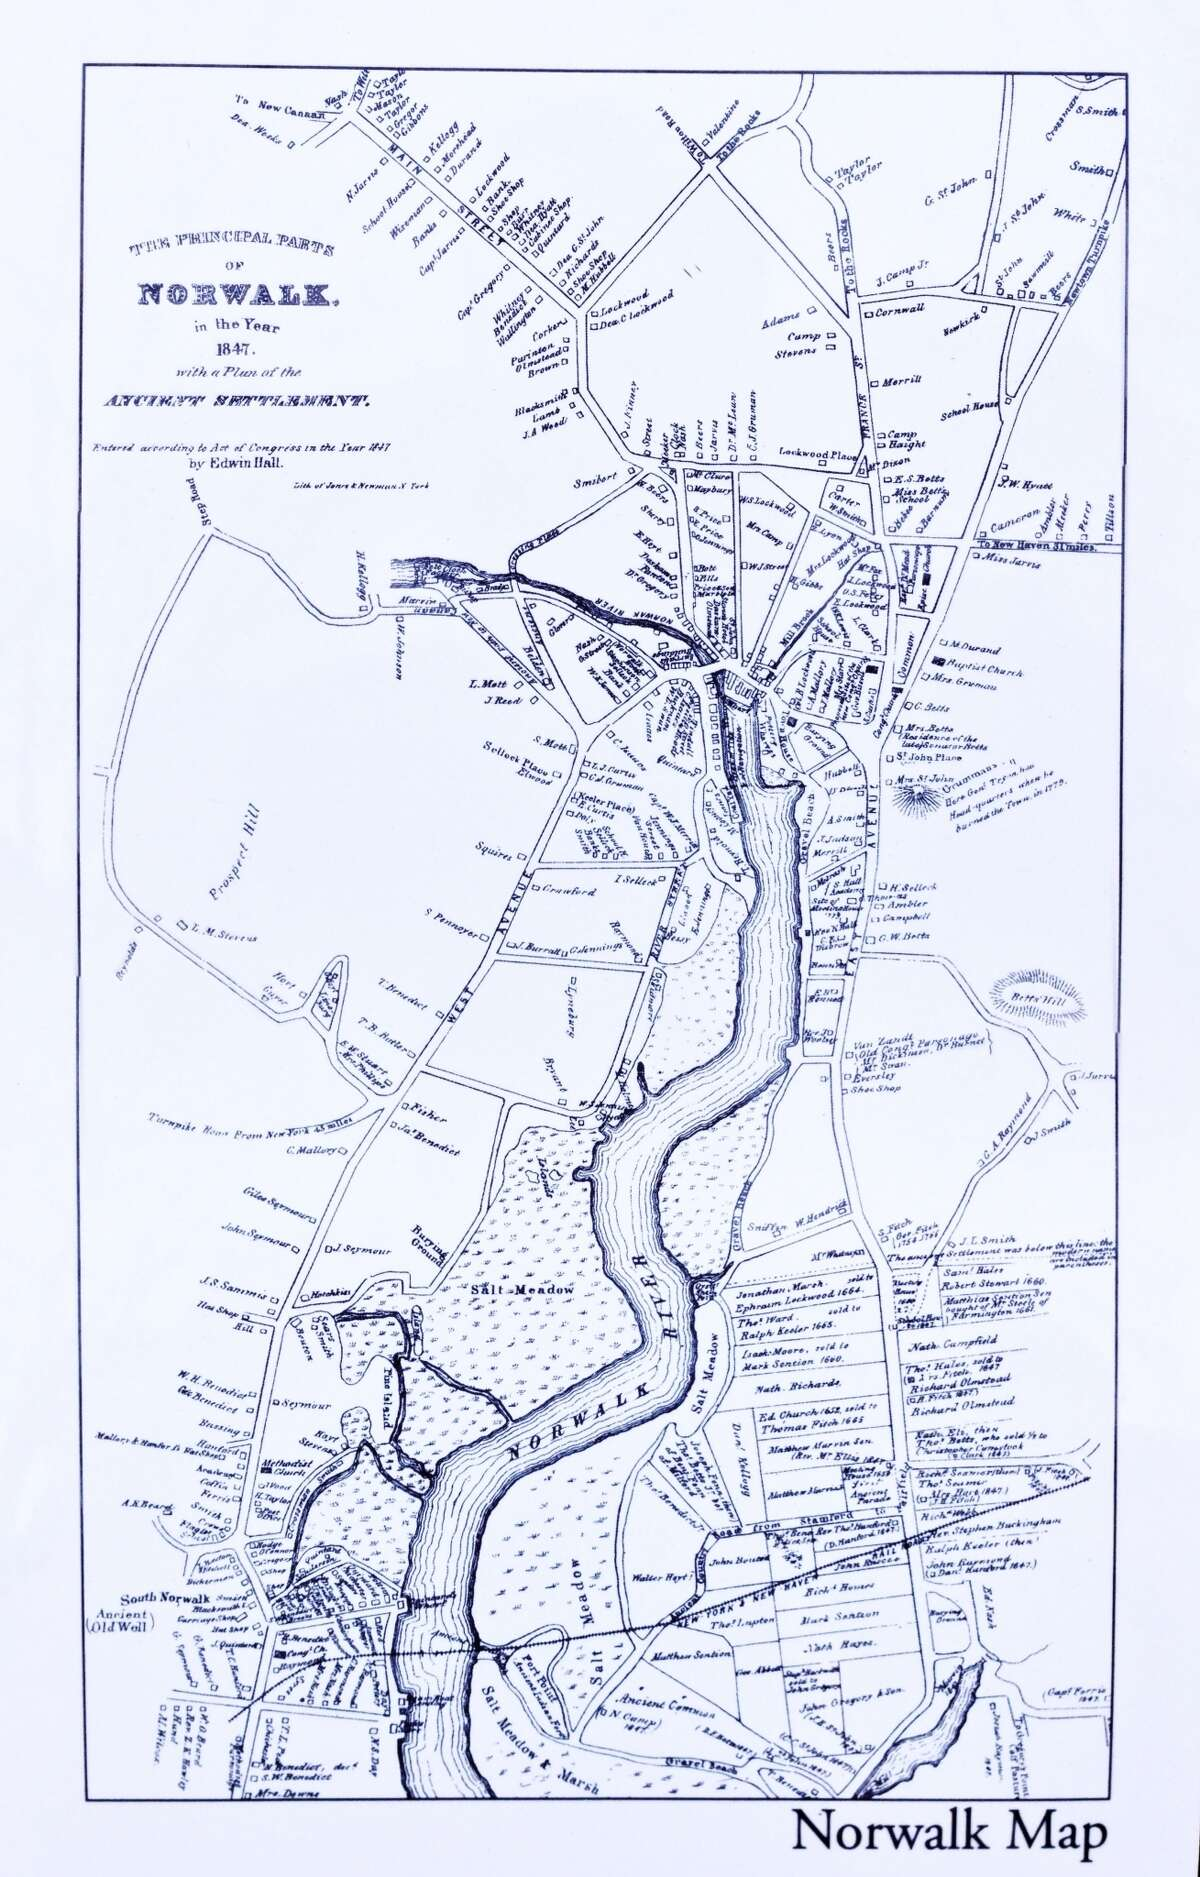 A map of Norwalk from 1847.